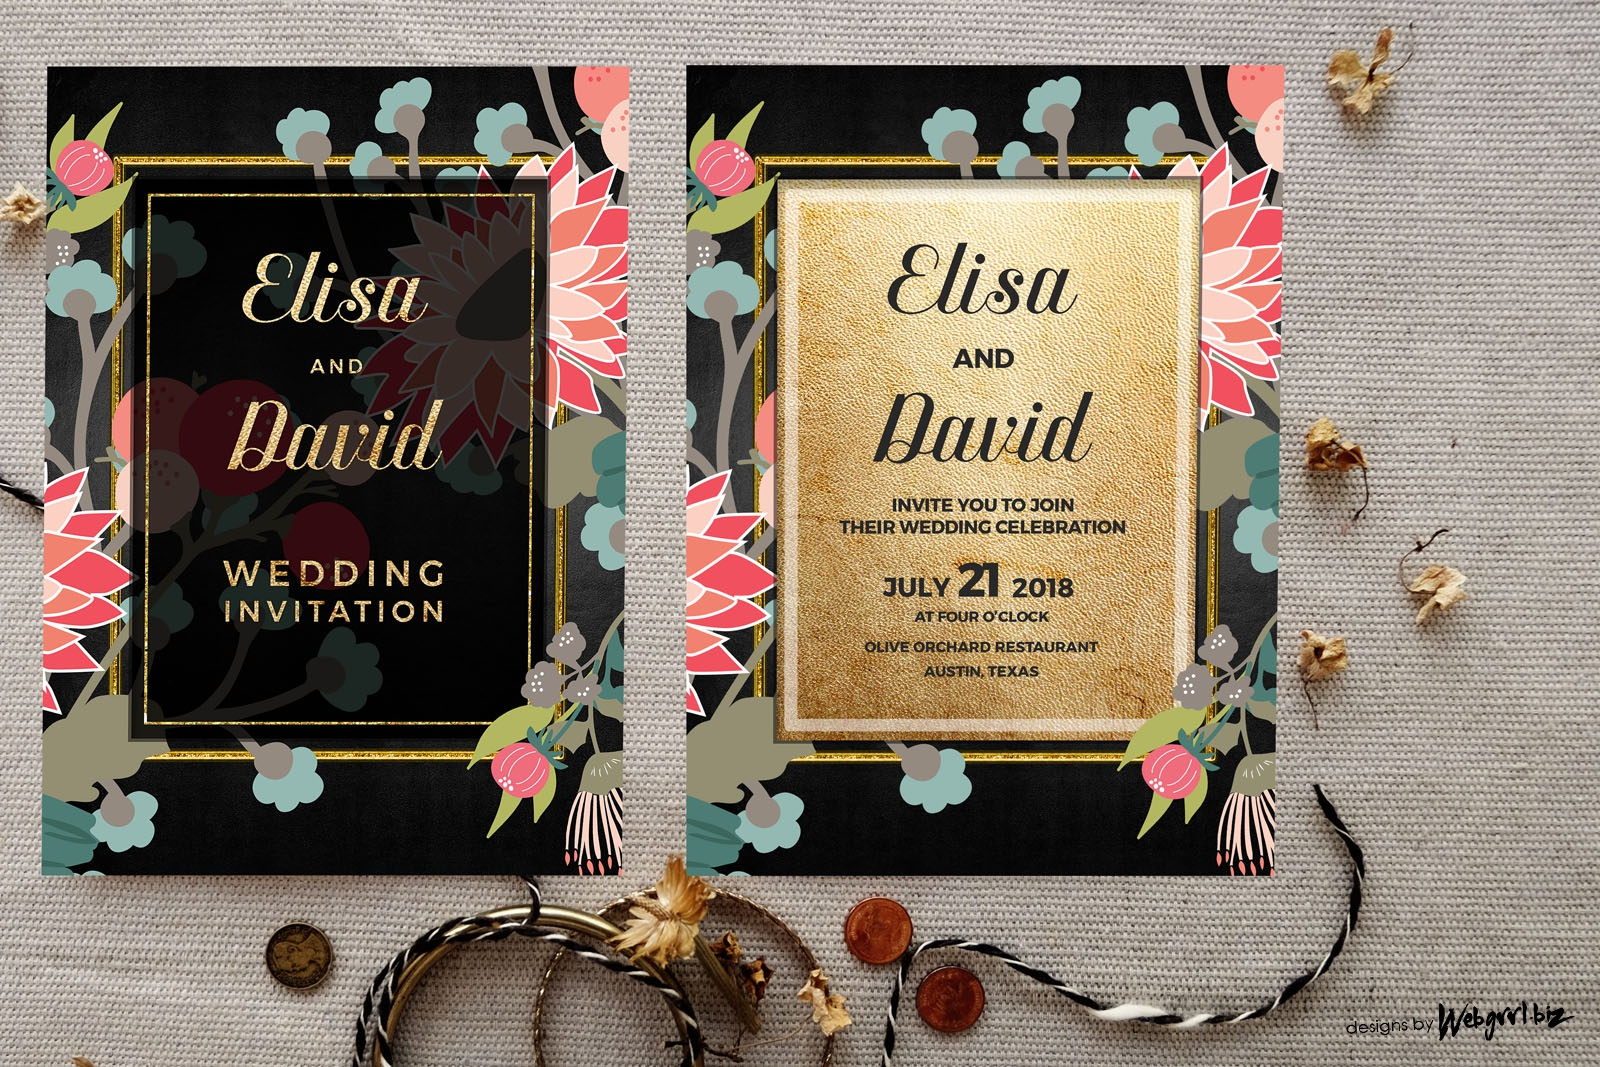 Wildflowers floral wedding invitation  goldblack1 mockup 1wm